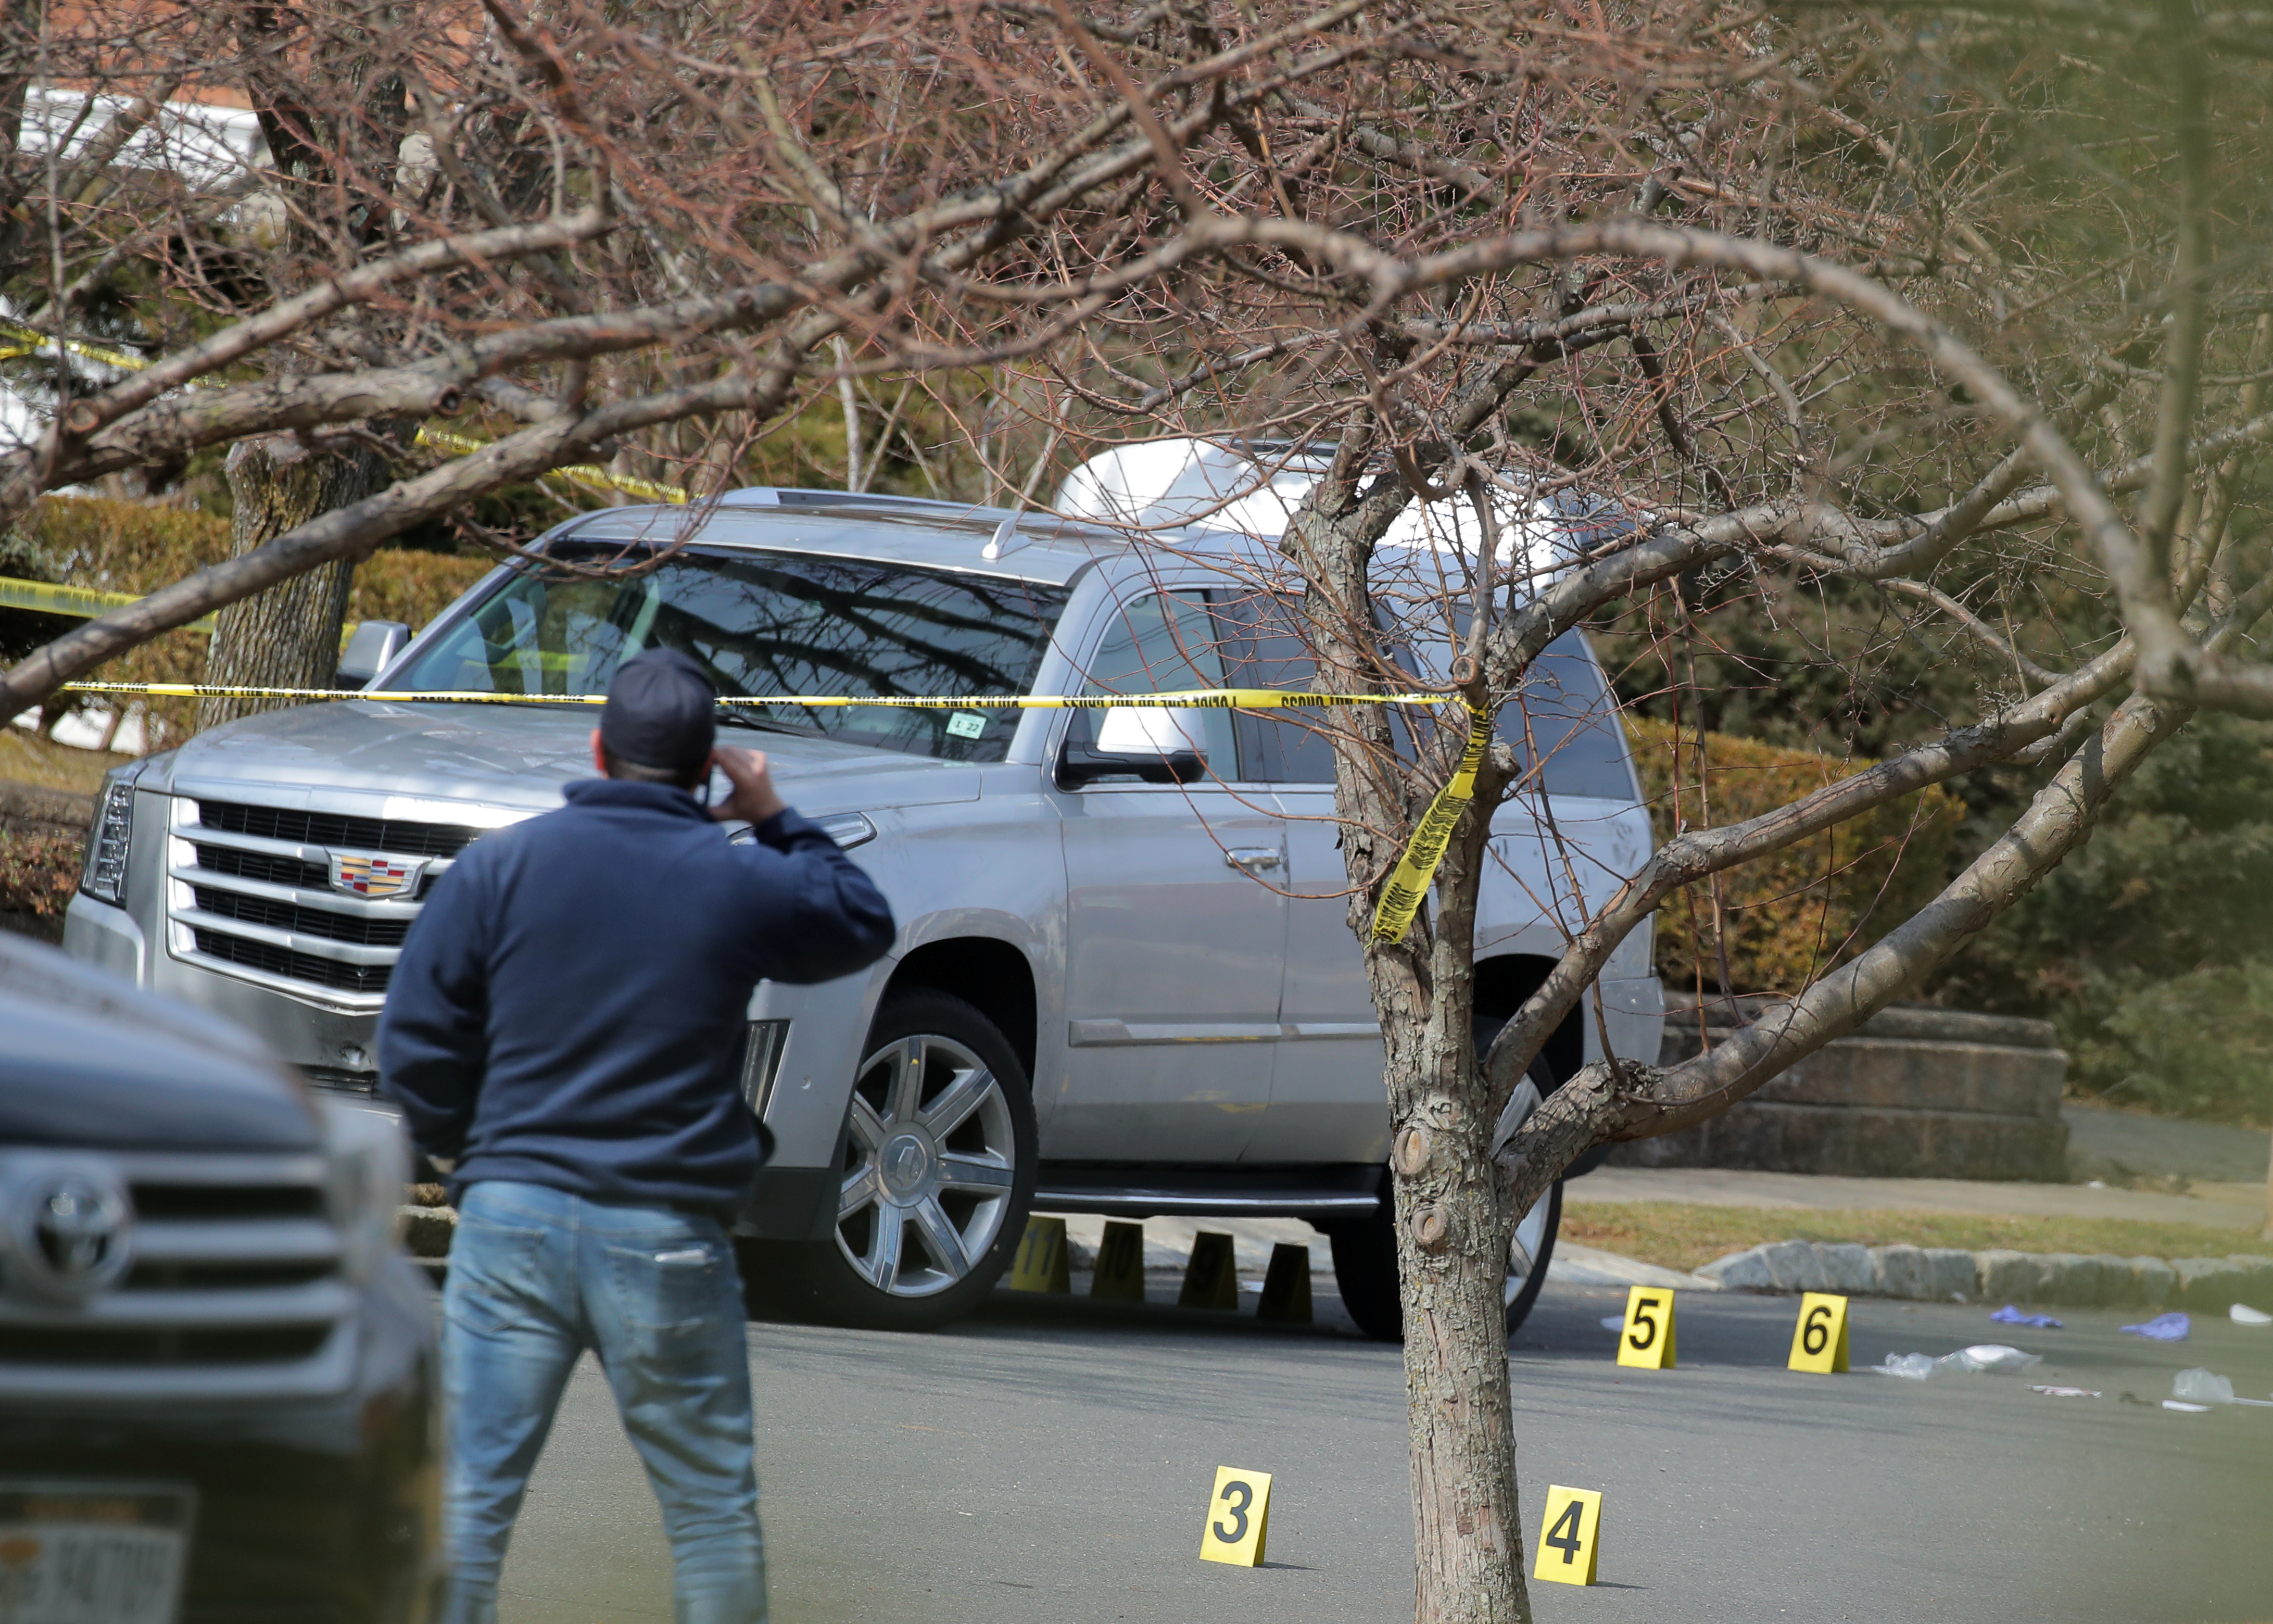 """New York City Police officers (NYPD) investigate the scene where, reported New York Mafia Gambino family crime boss, Francesco """"Franky Boy"""" Cali, was killed outside his home in the Staten Island borough of New York City, U.S., March 14, 2019. REUTERS/Brendan McDermid"""